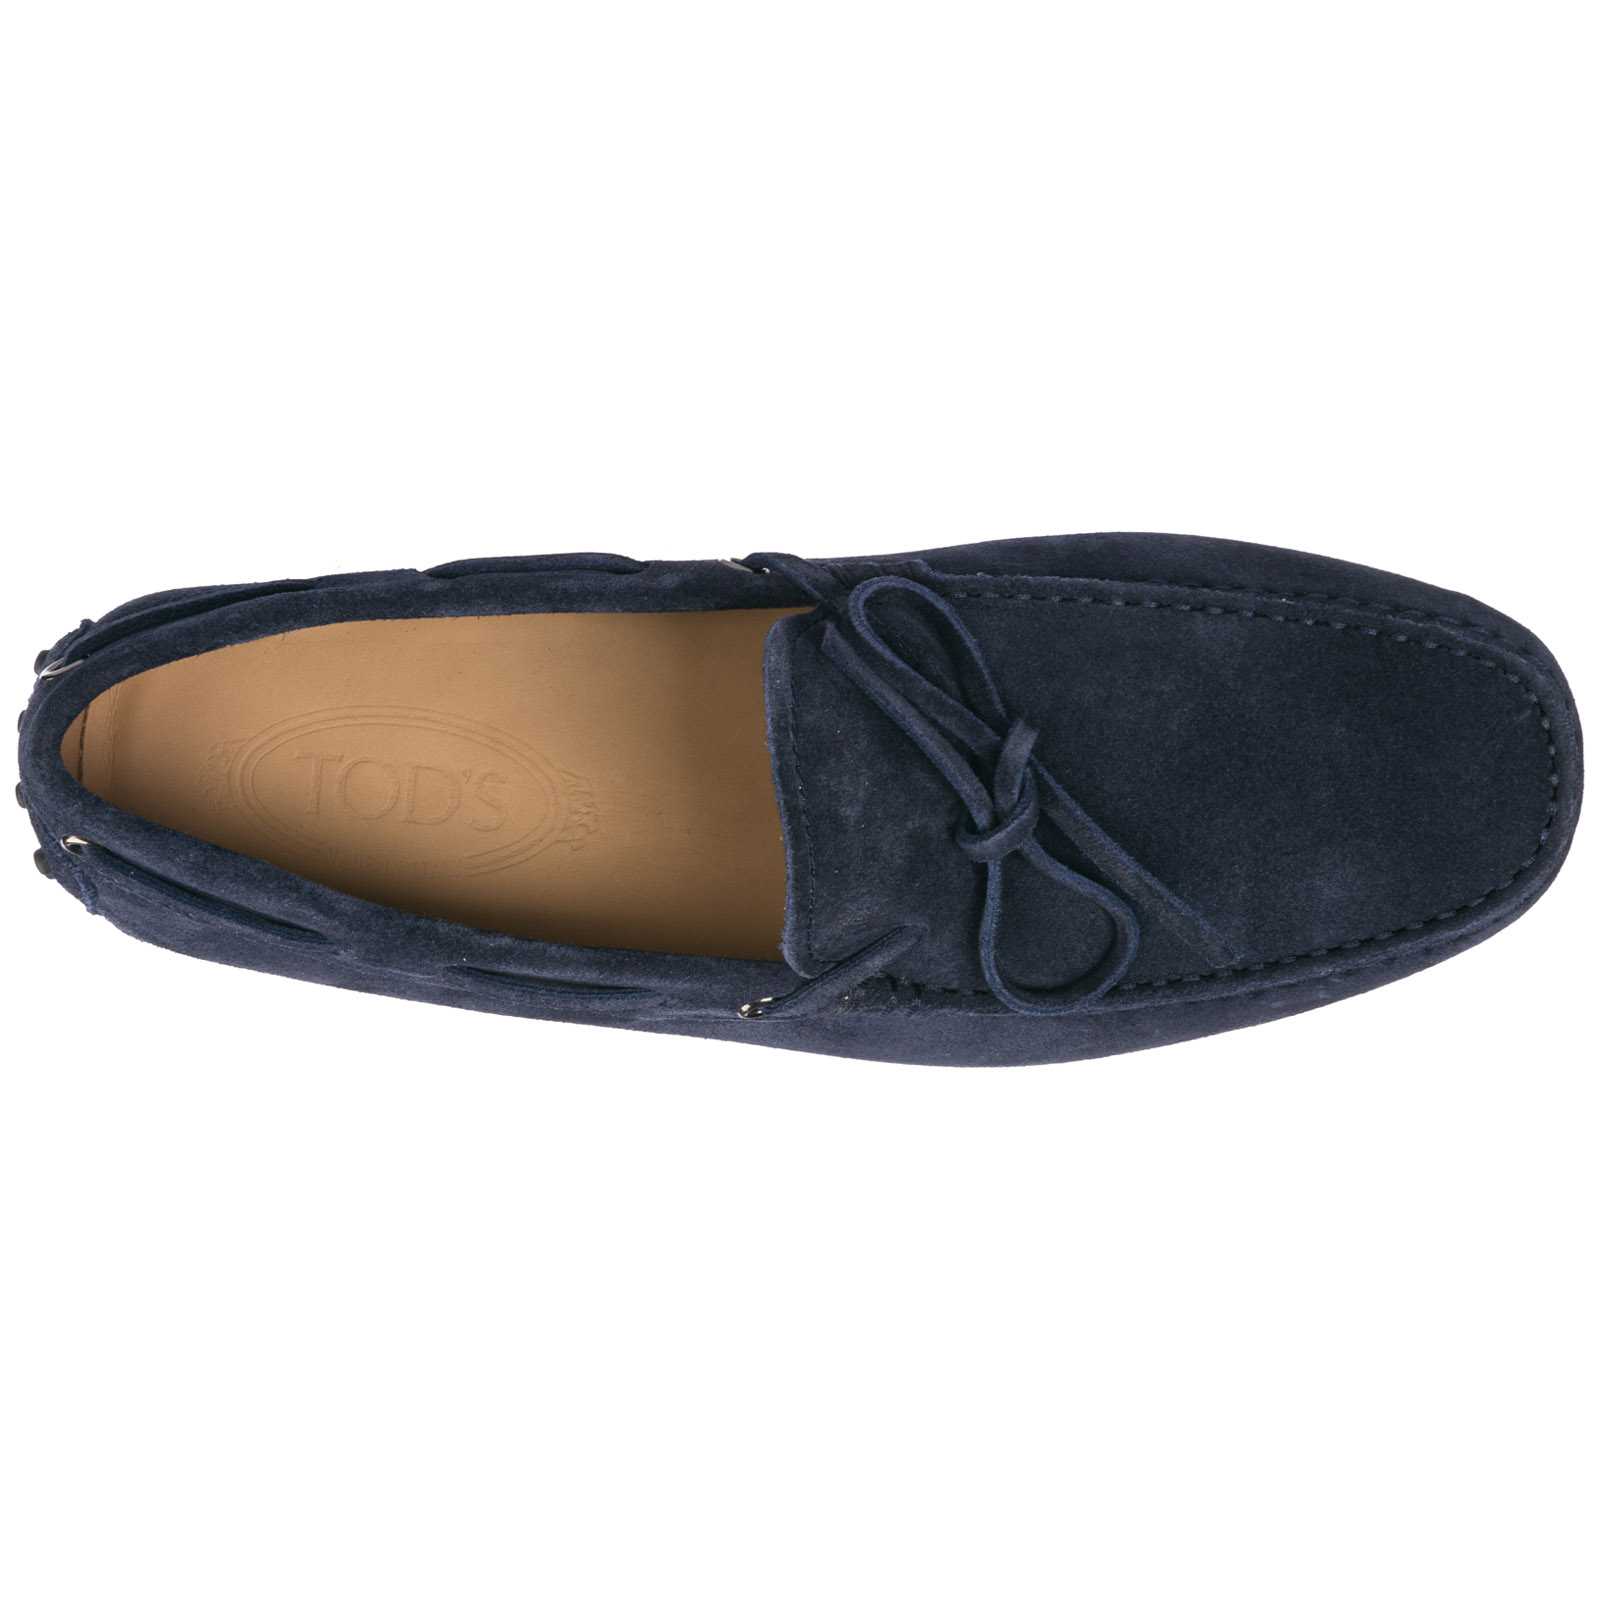 Men's suede loafers moccasins gommino